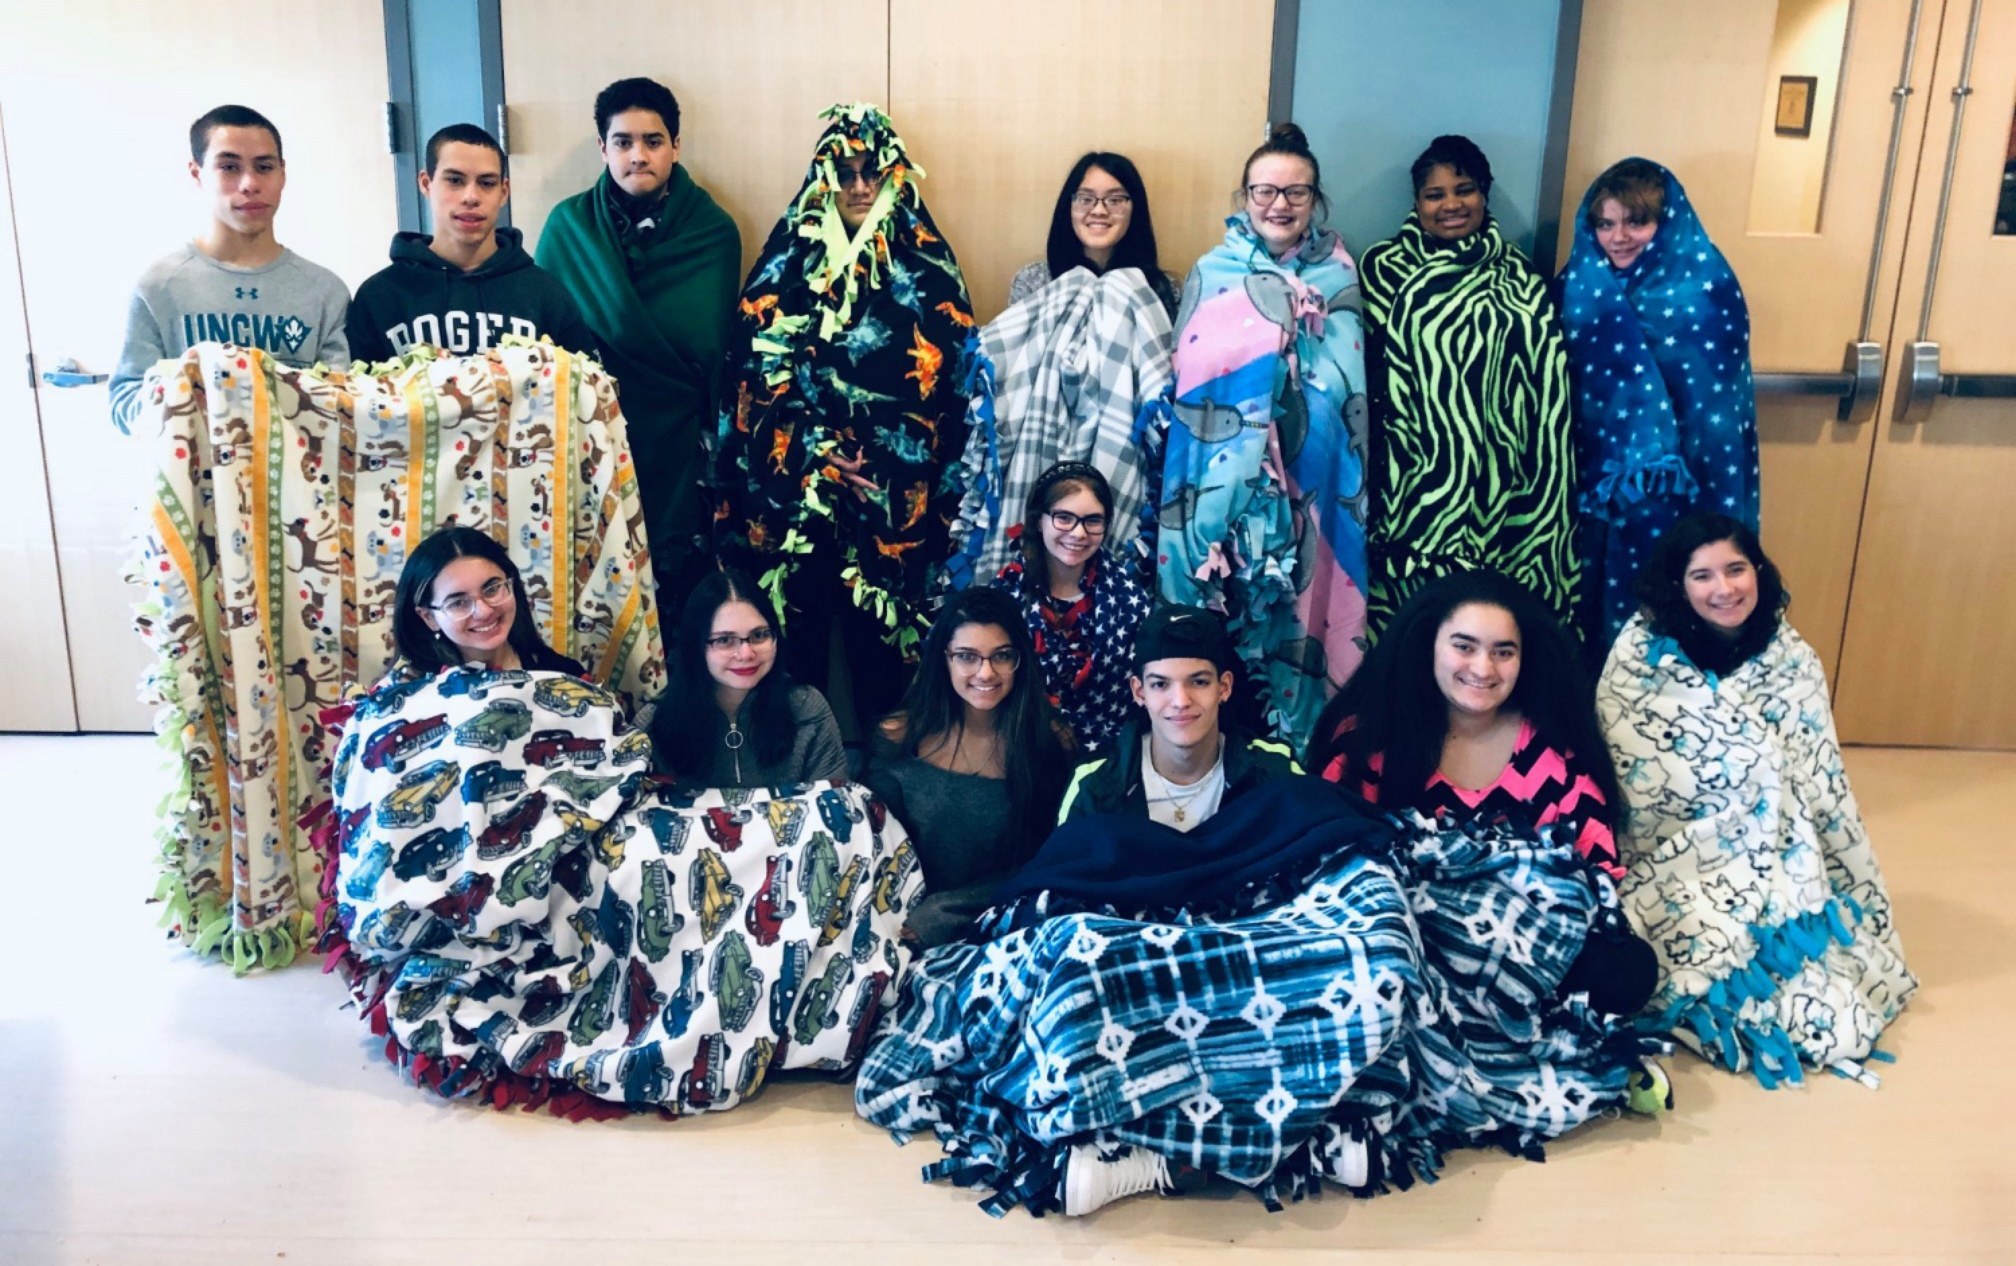 Our teen volunteers helped us make so many blankets to help keep someone warm this past winter!